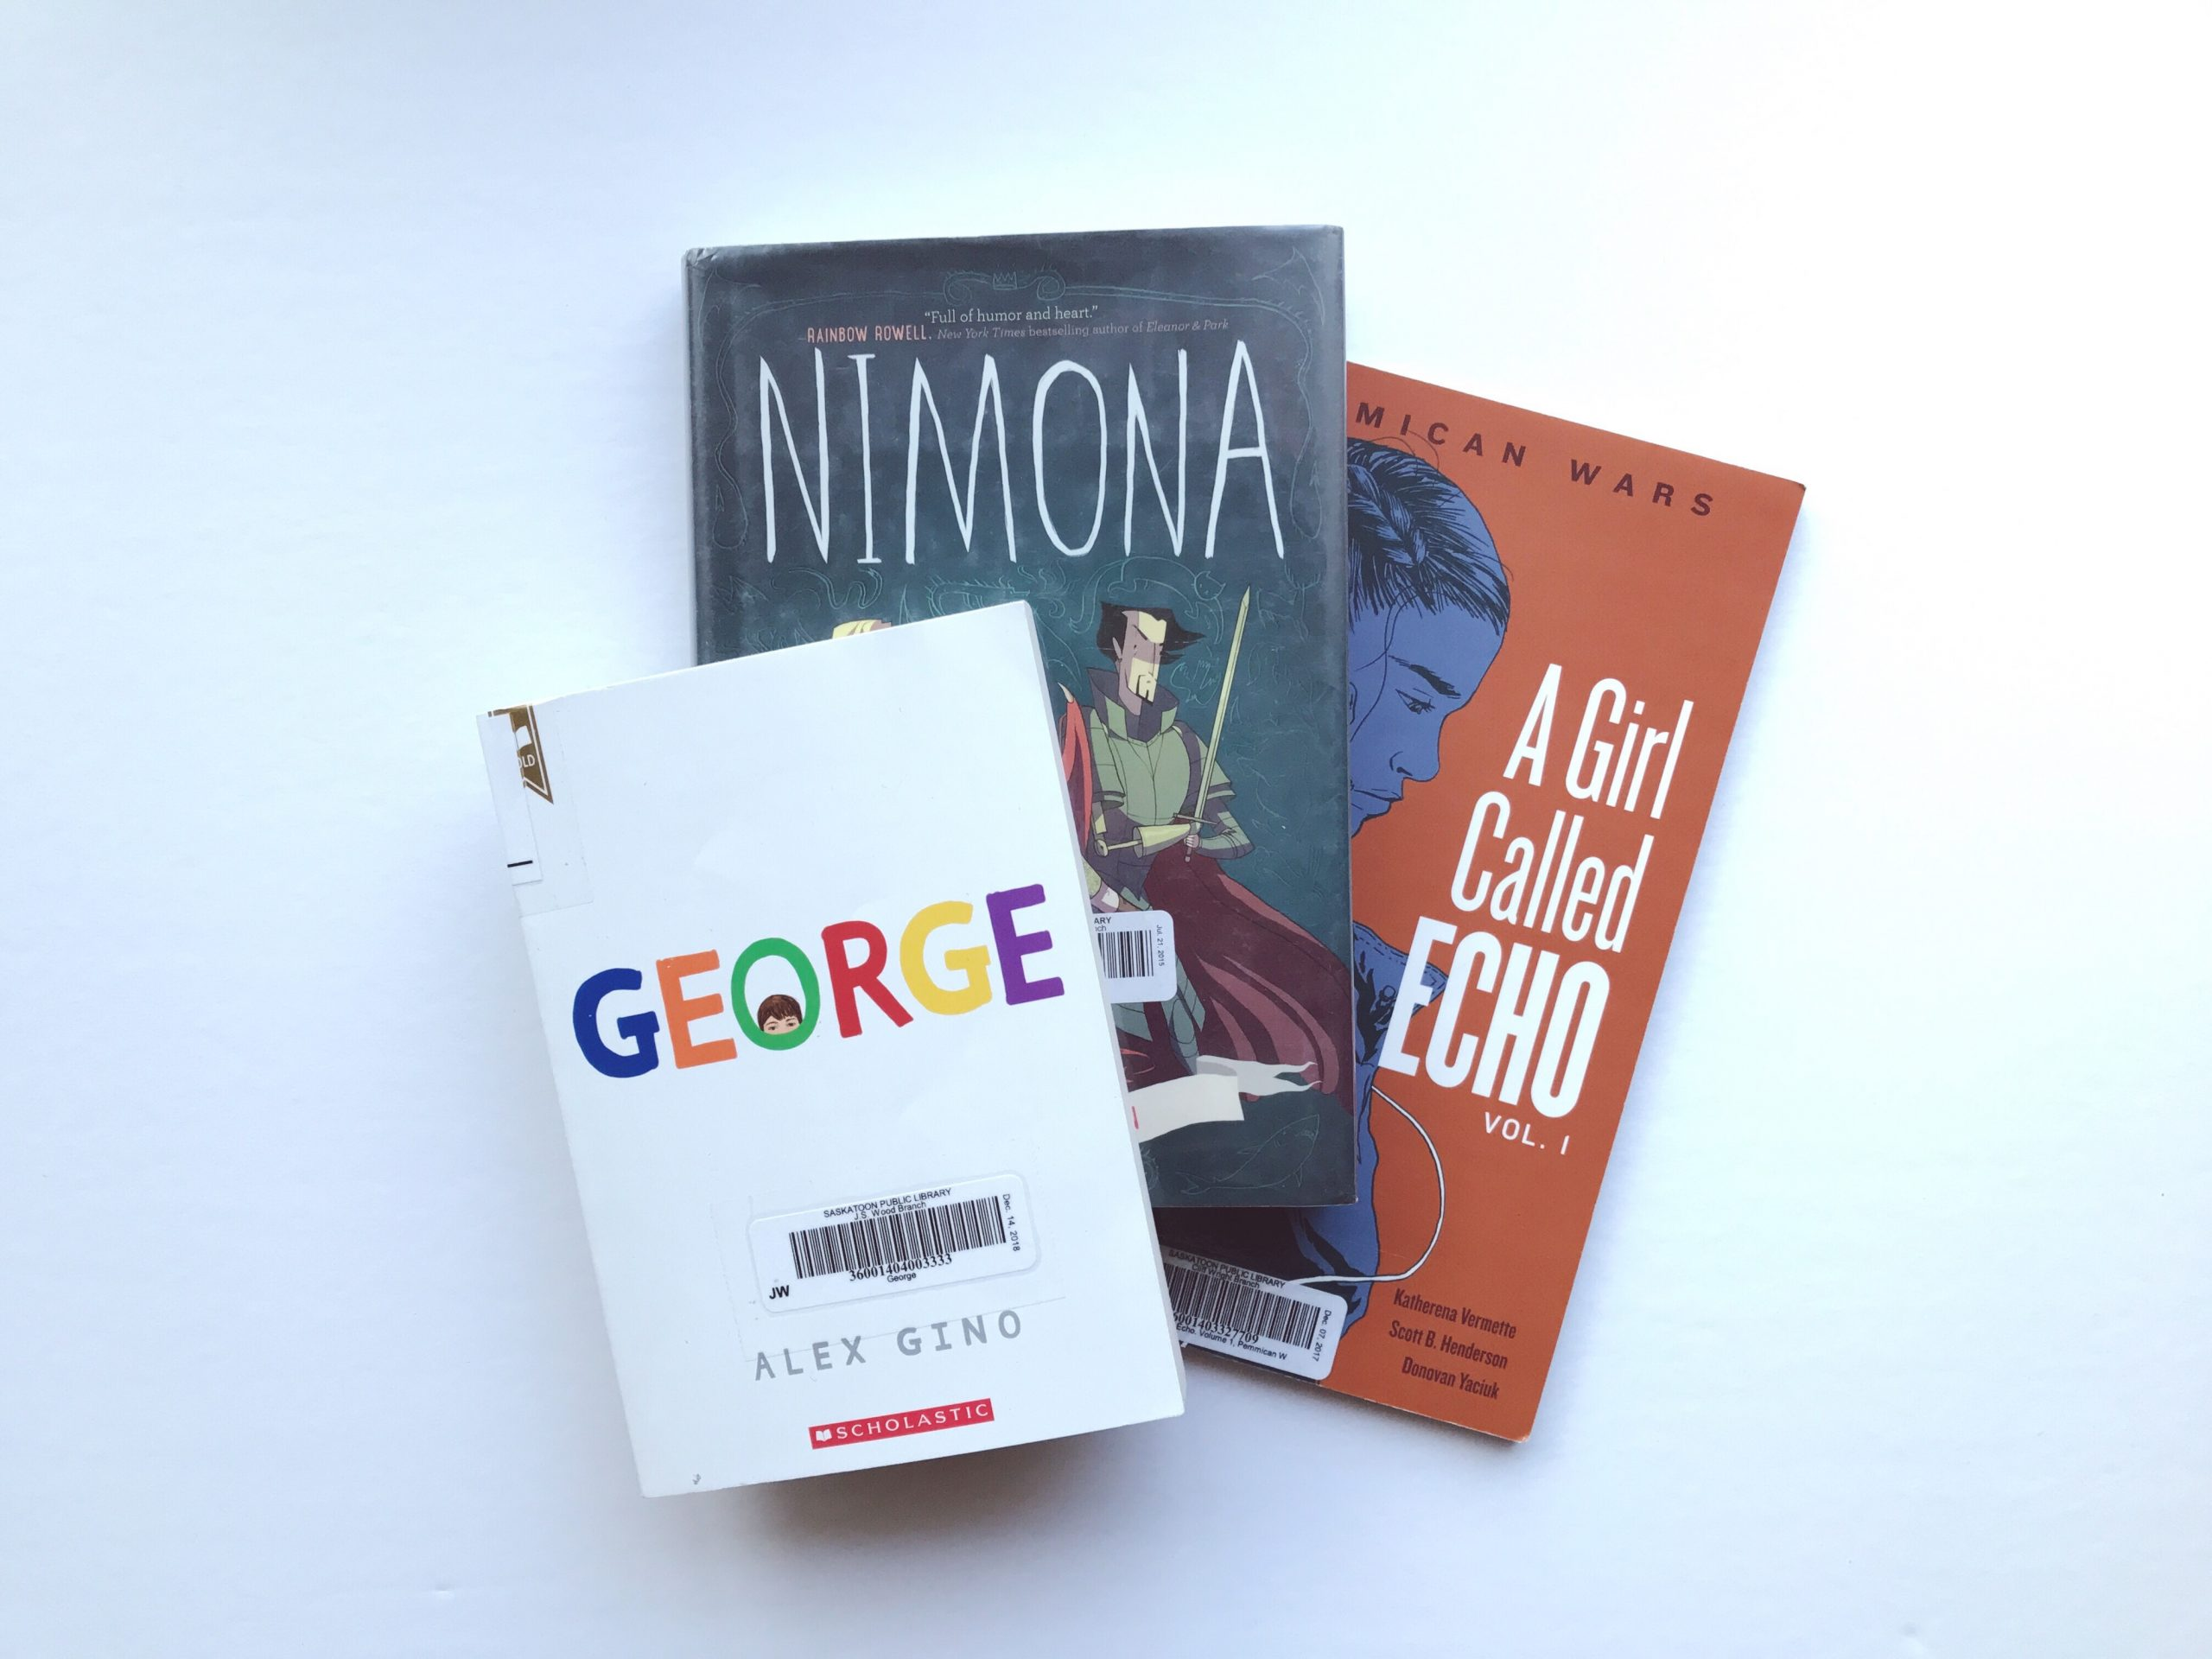 Book Covers: George, Nimona, A Girl Called Echo, and This Is Kind Of An Epic Love Story